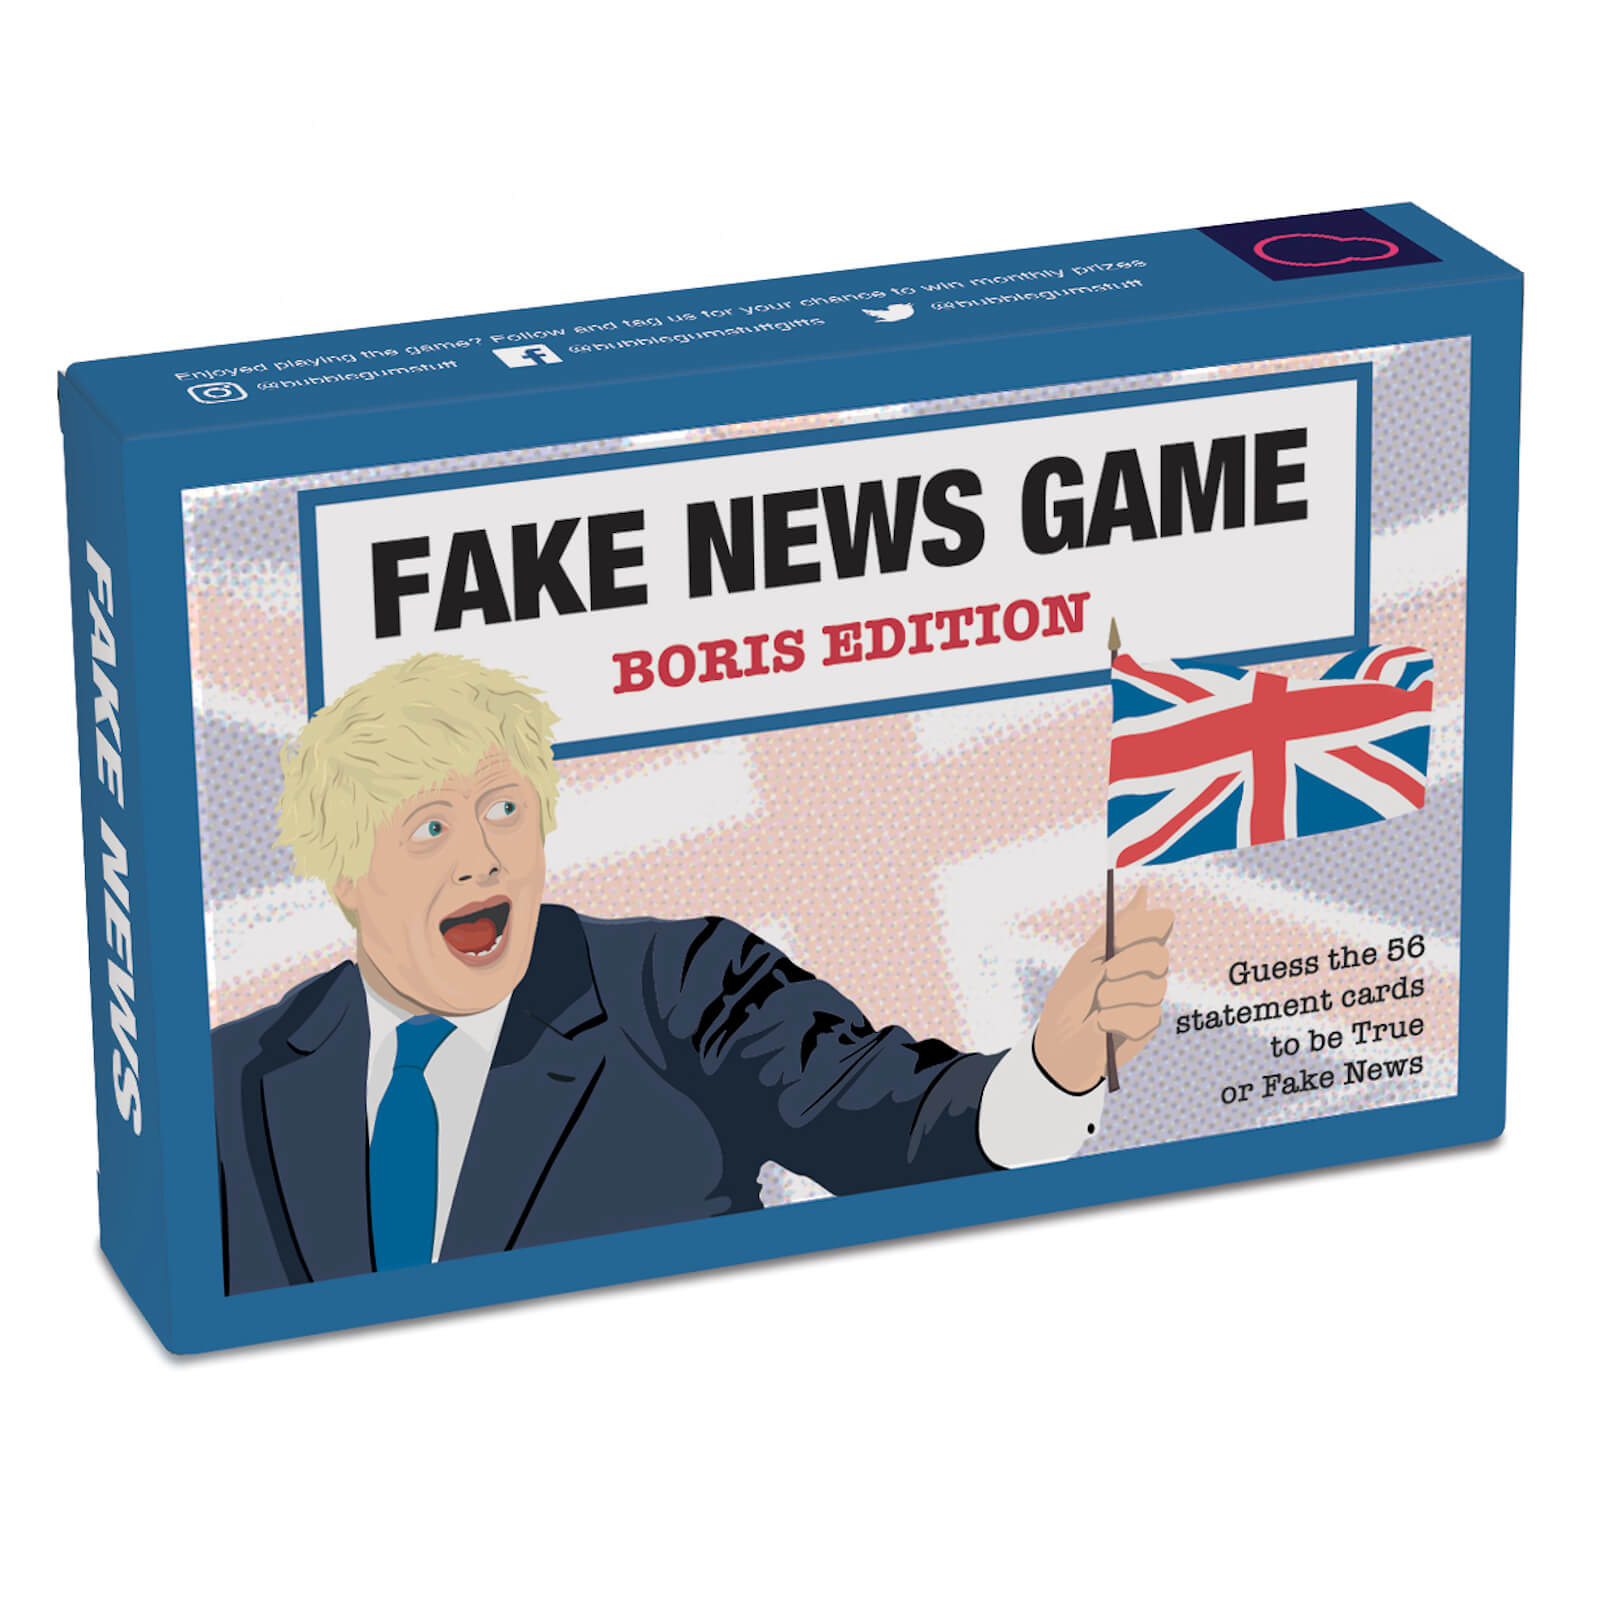 Image of Fake News Game - Boris Edition